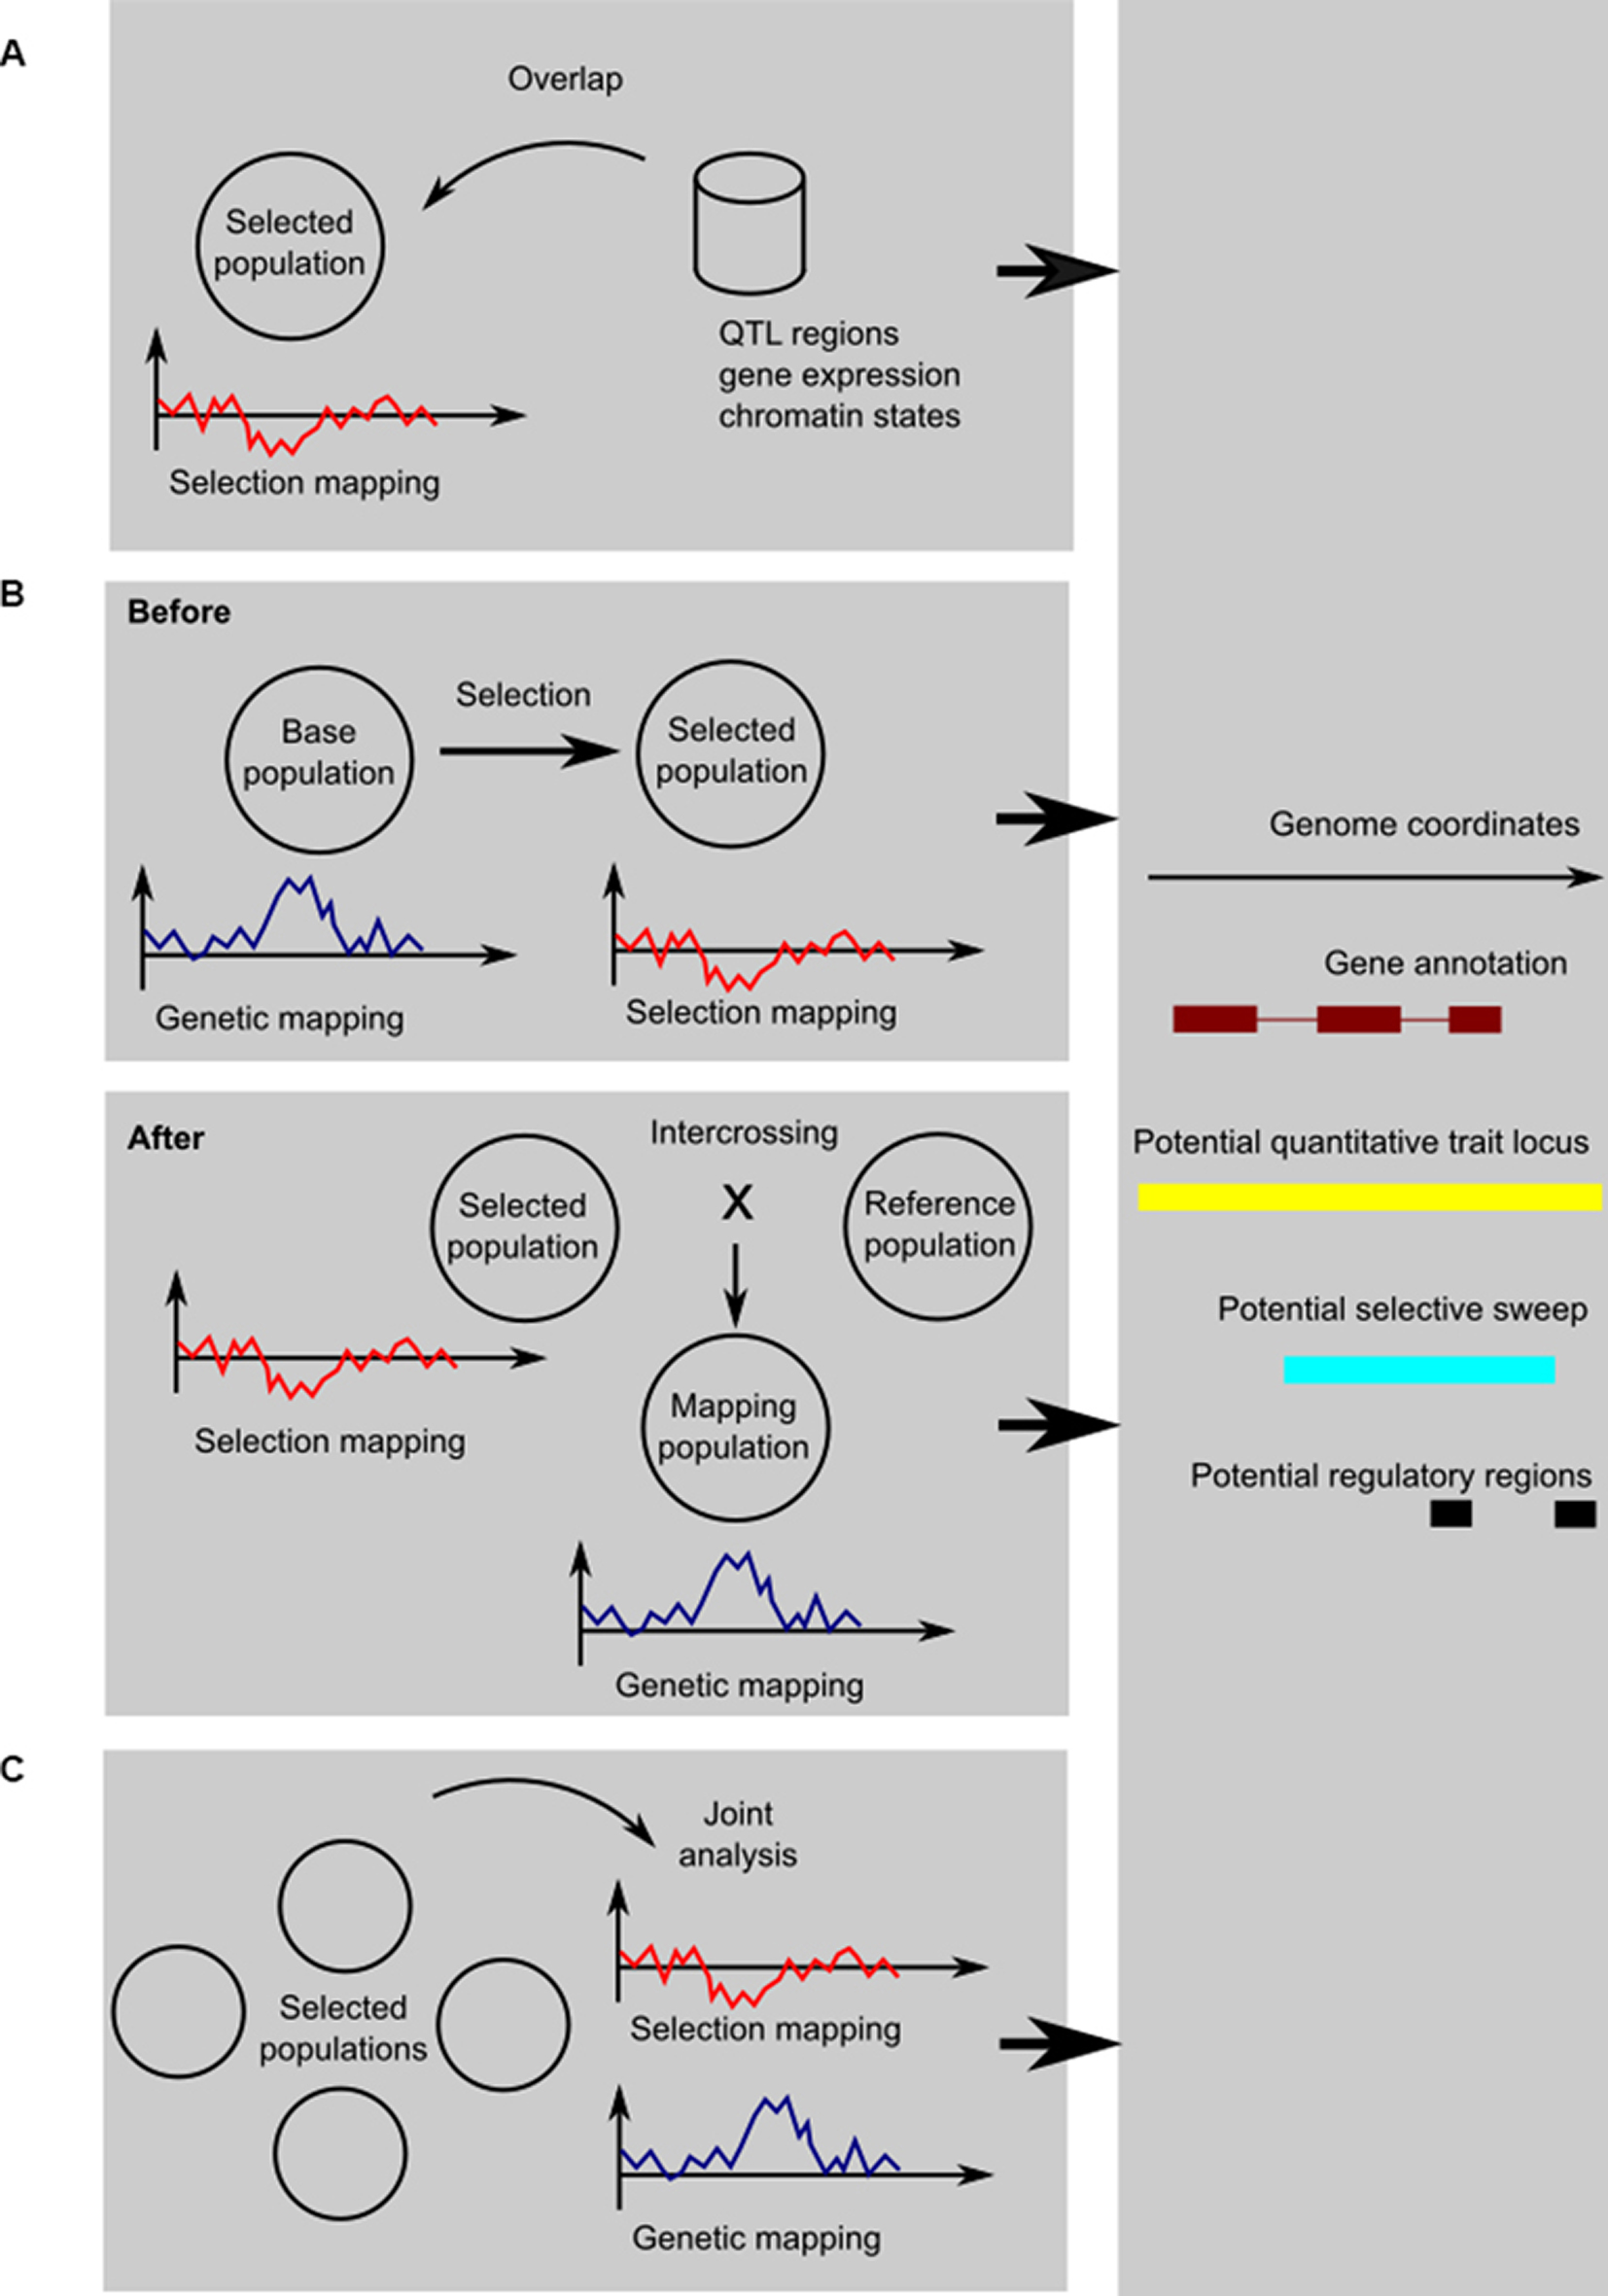 genetic mapping | On unicorns and genes on human genome, cognitive mapping, human genome project, restriction maps, thomas morgan's linkage mapping, gene map, molecular genetics, quantitative trait locus, three-point cross, community mapping, dna mapping, mental mapping, mendelian inheritance, snp genotyping, genome-wide association study, association mapping, genetic marker,